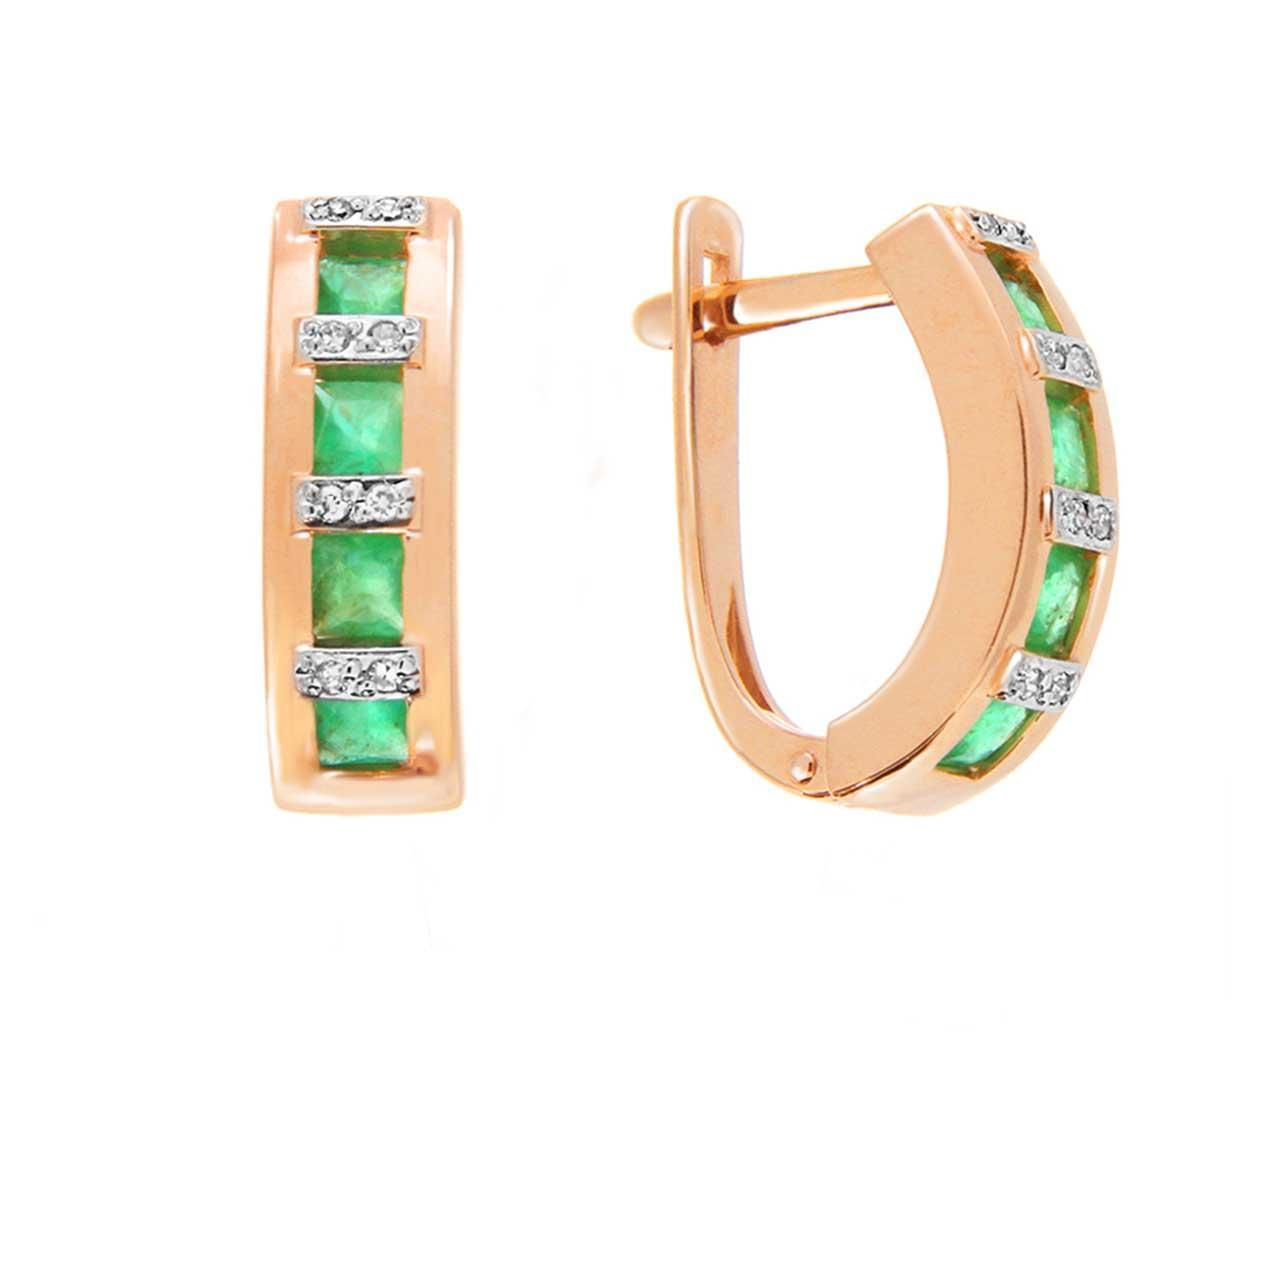 Channel Set Emerald with Diamonds Earrings